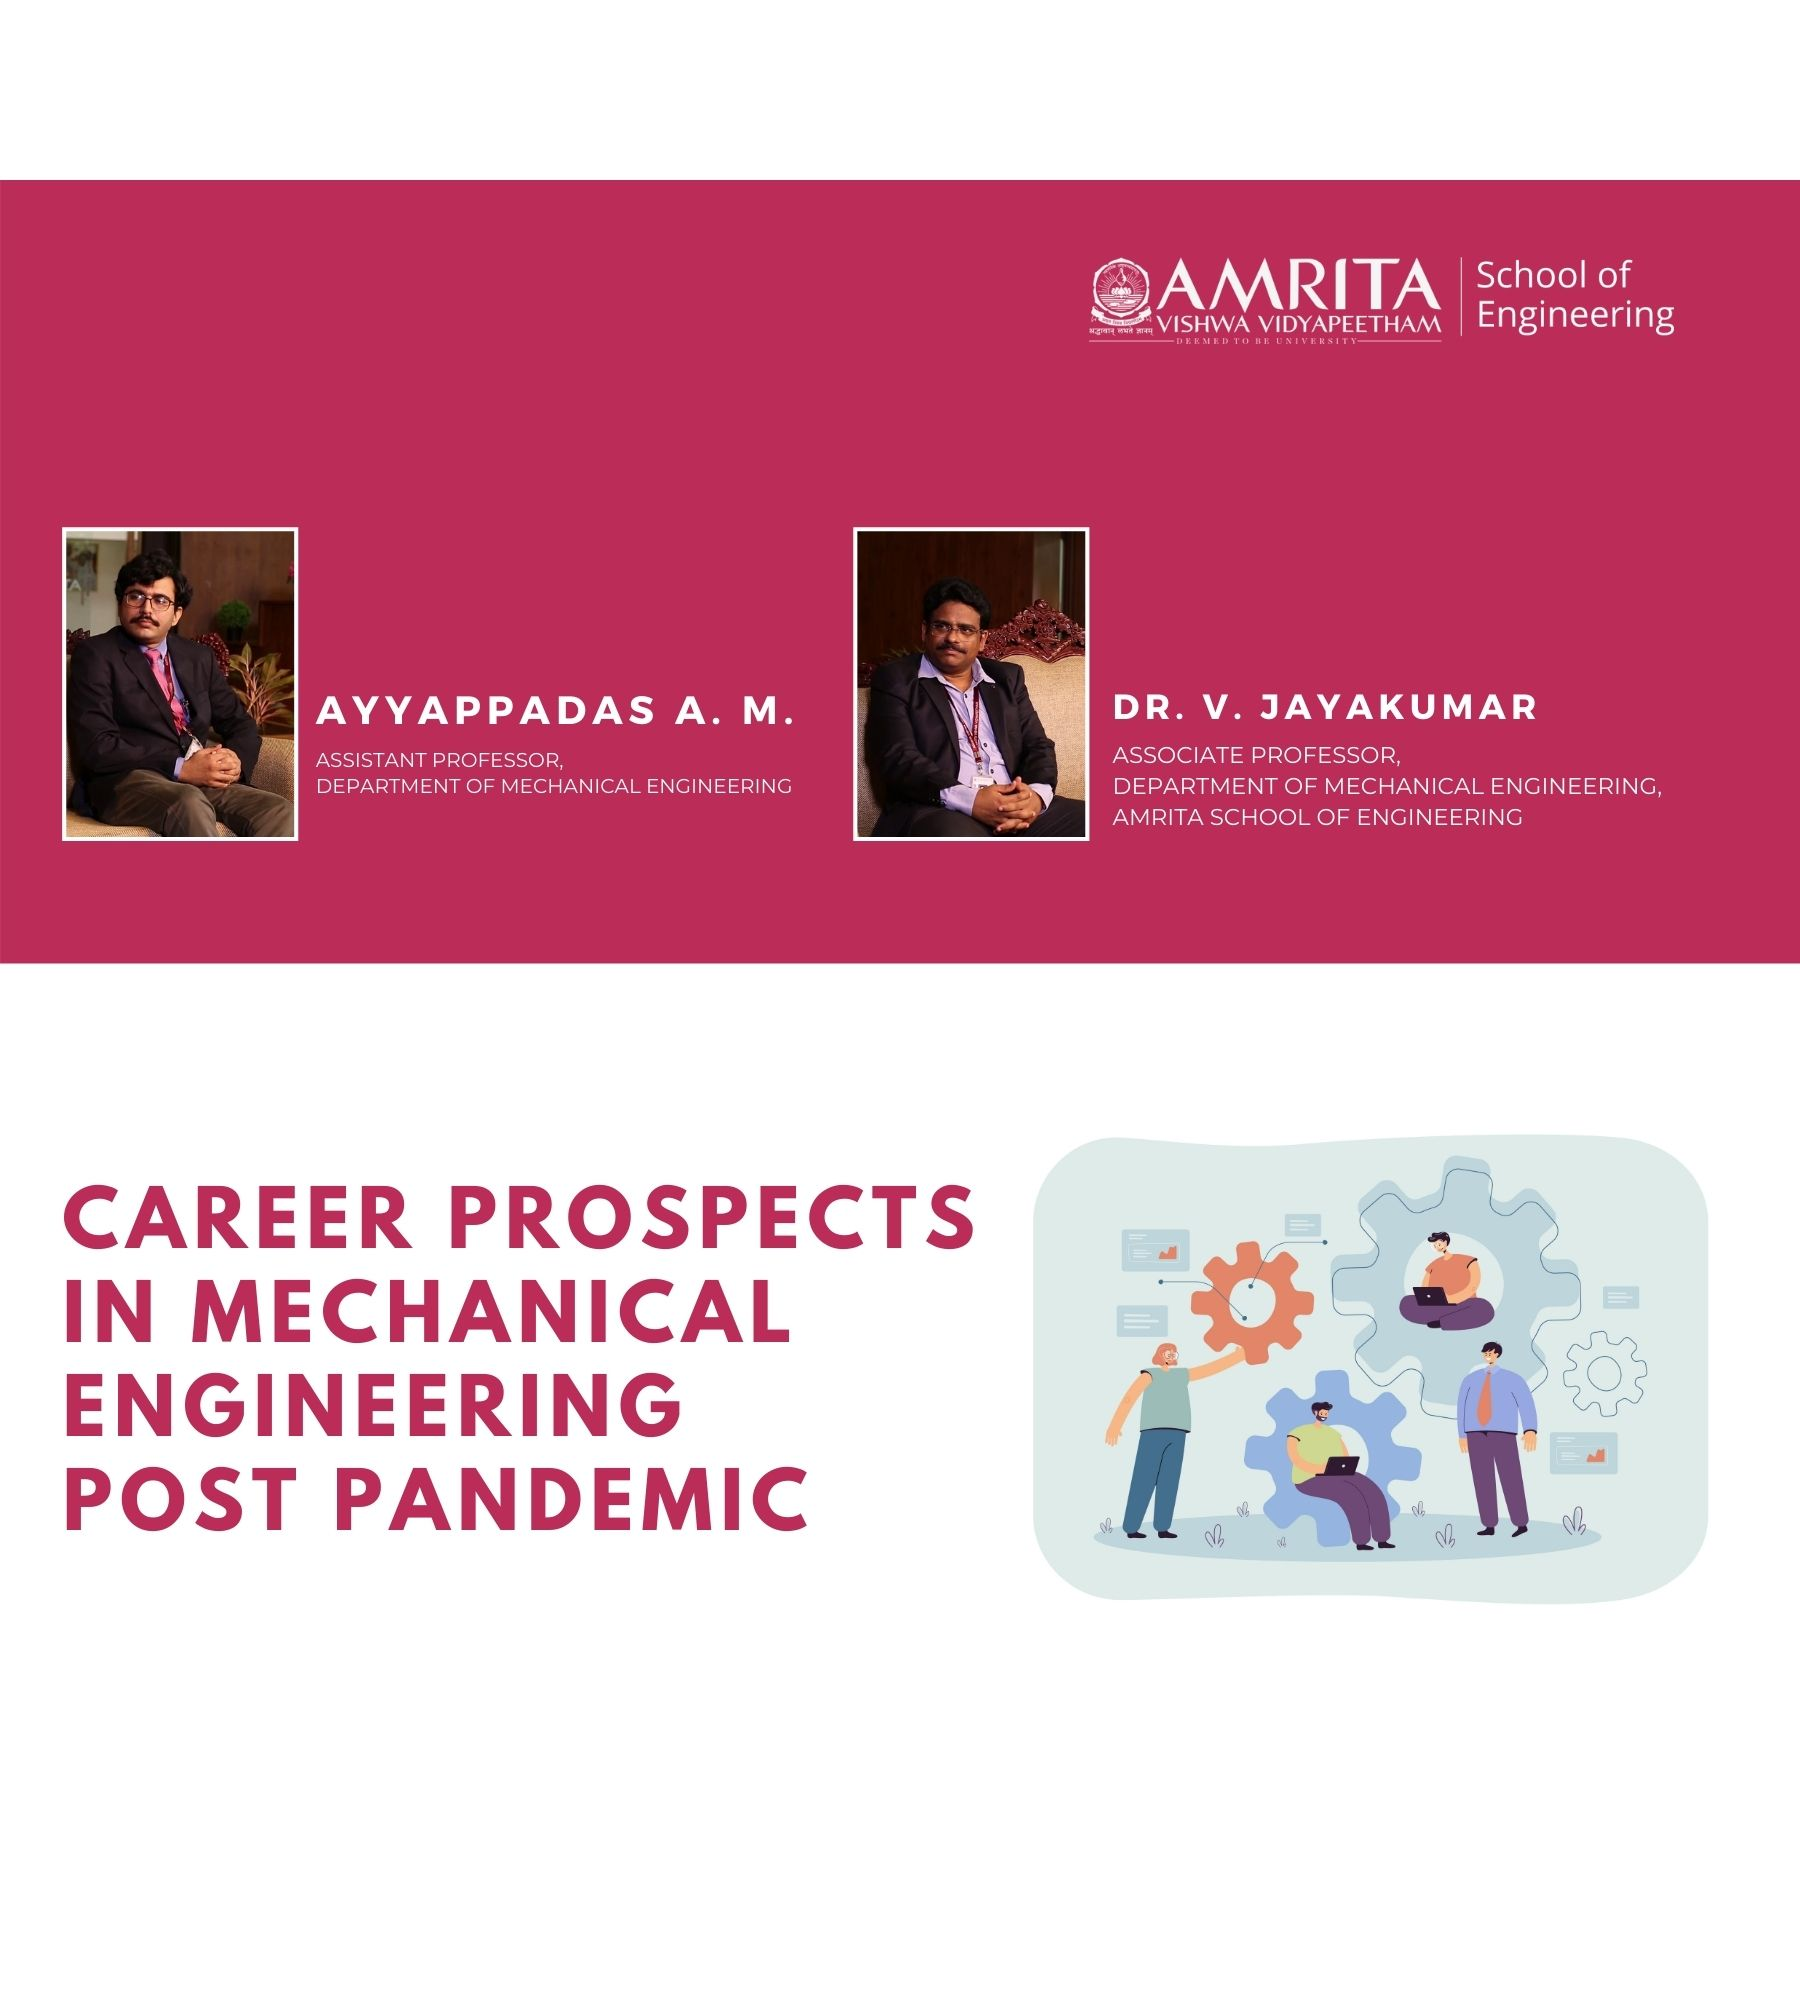 Career Prospects in Mechanical Engineering